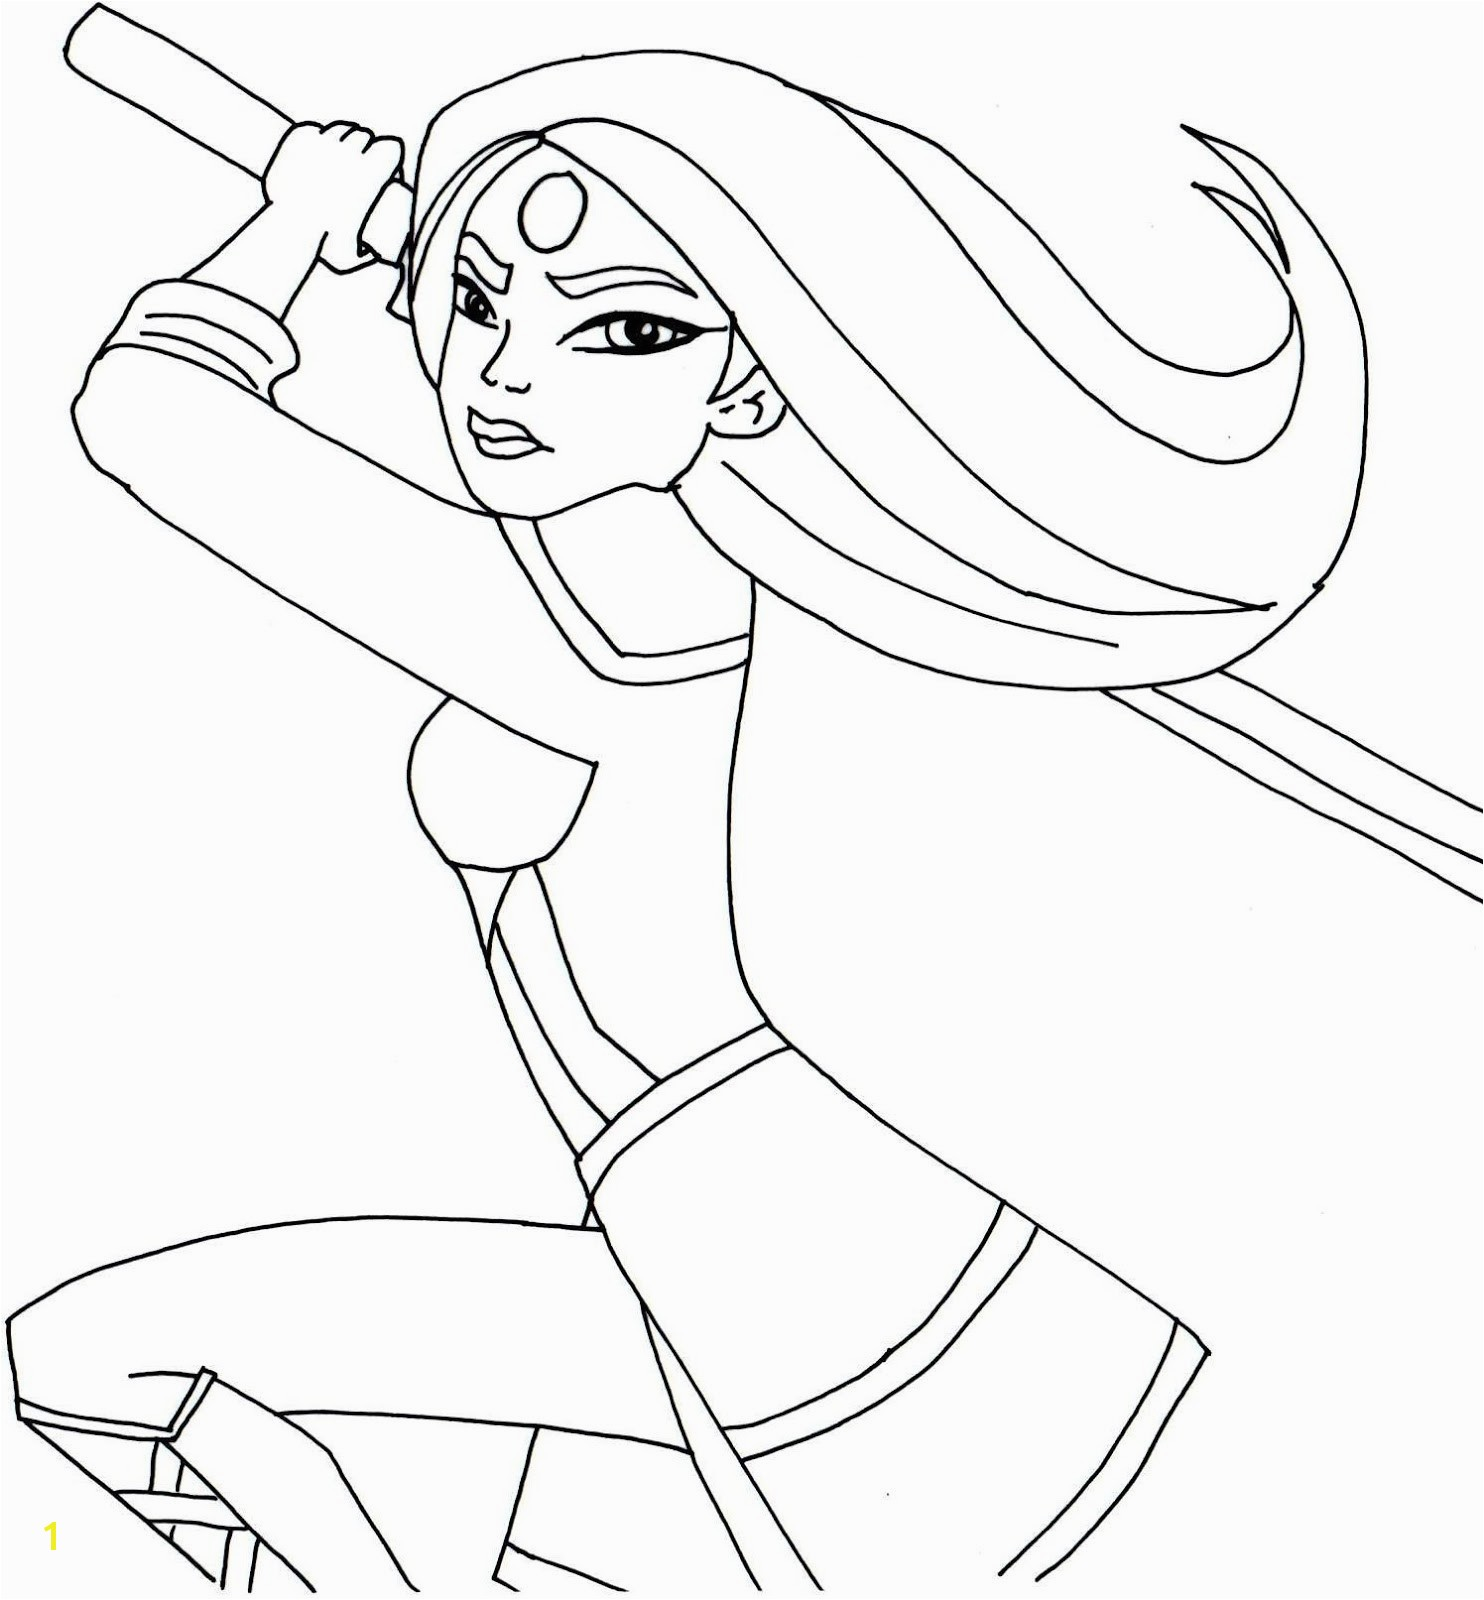 Female Superhero Coloring Pages Luxury Coloring Pages for Girls Lovely Printable Cds 0d – Fun Time